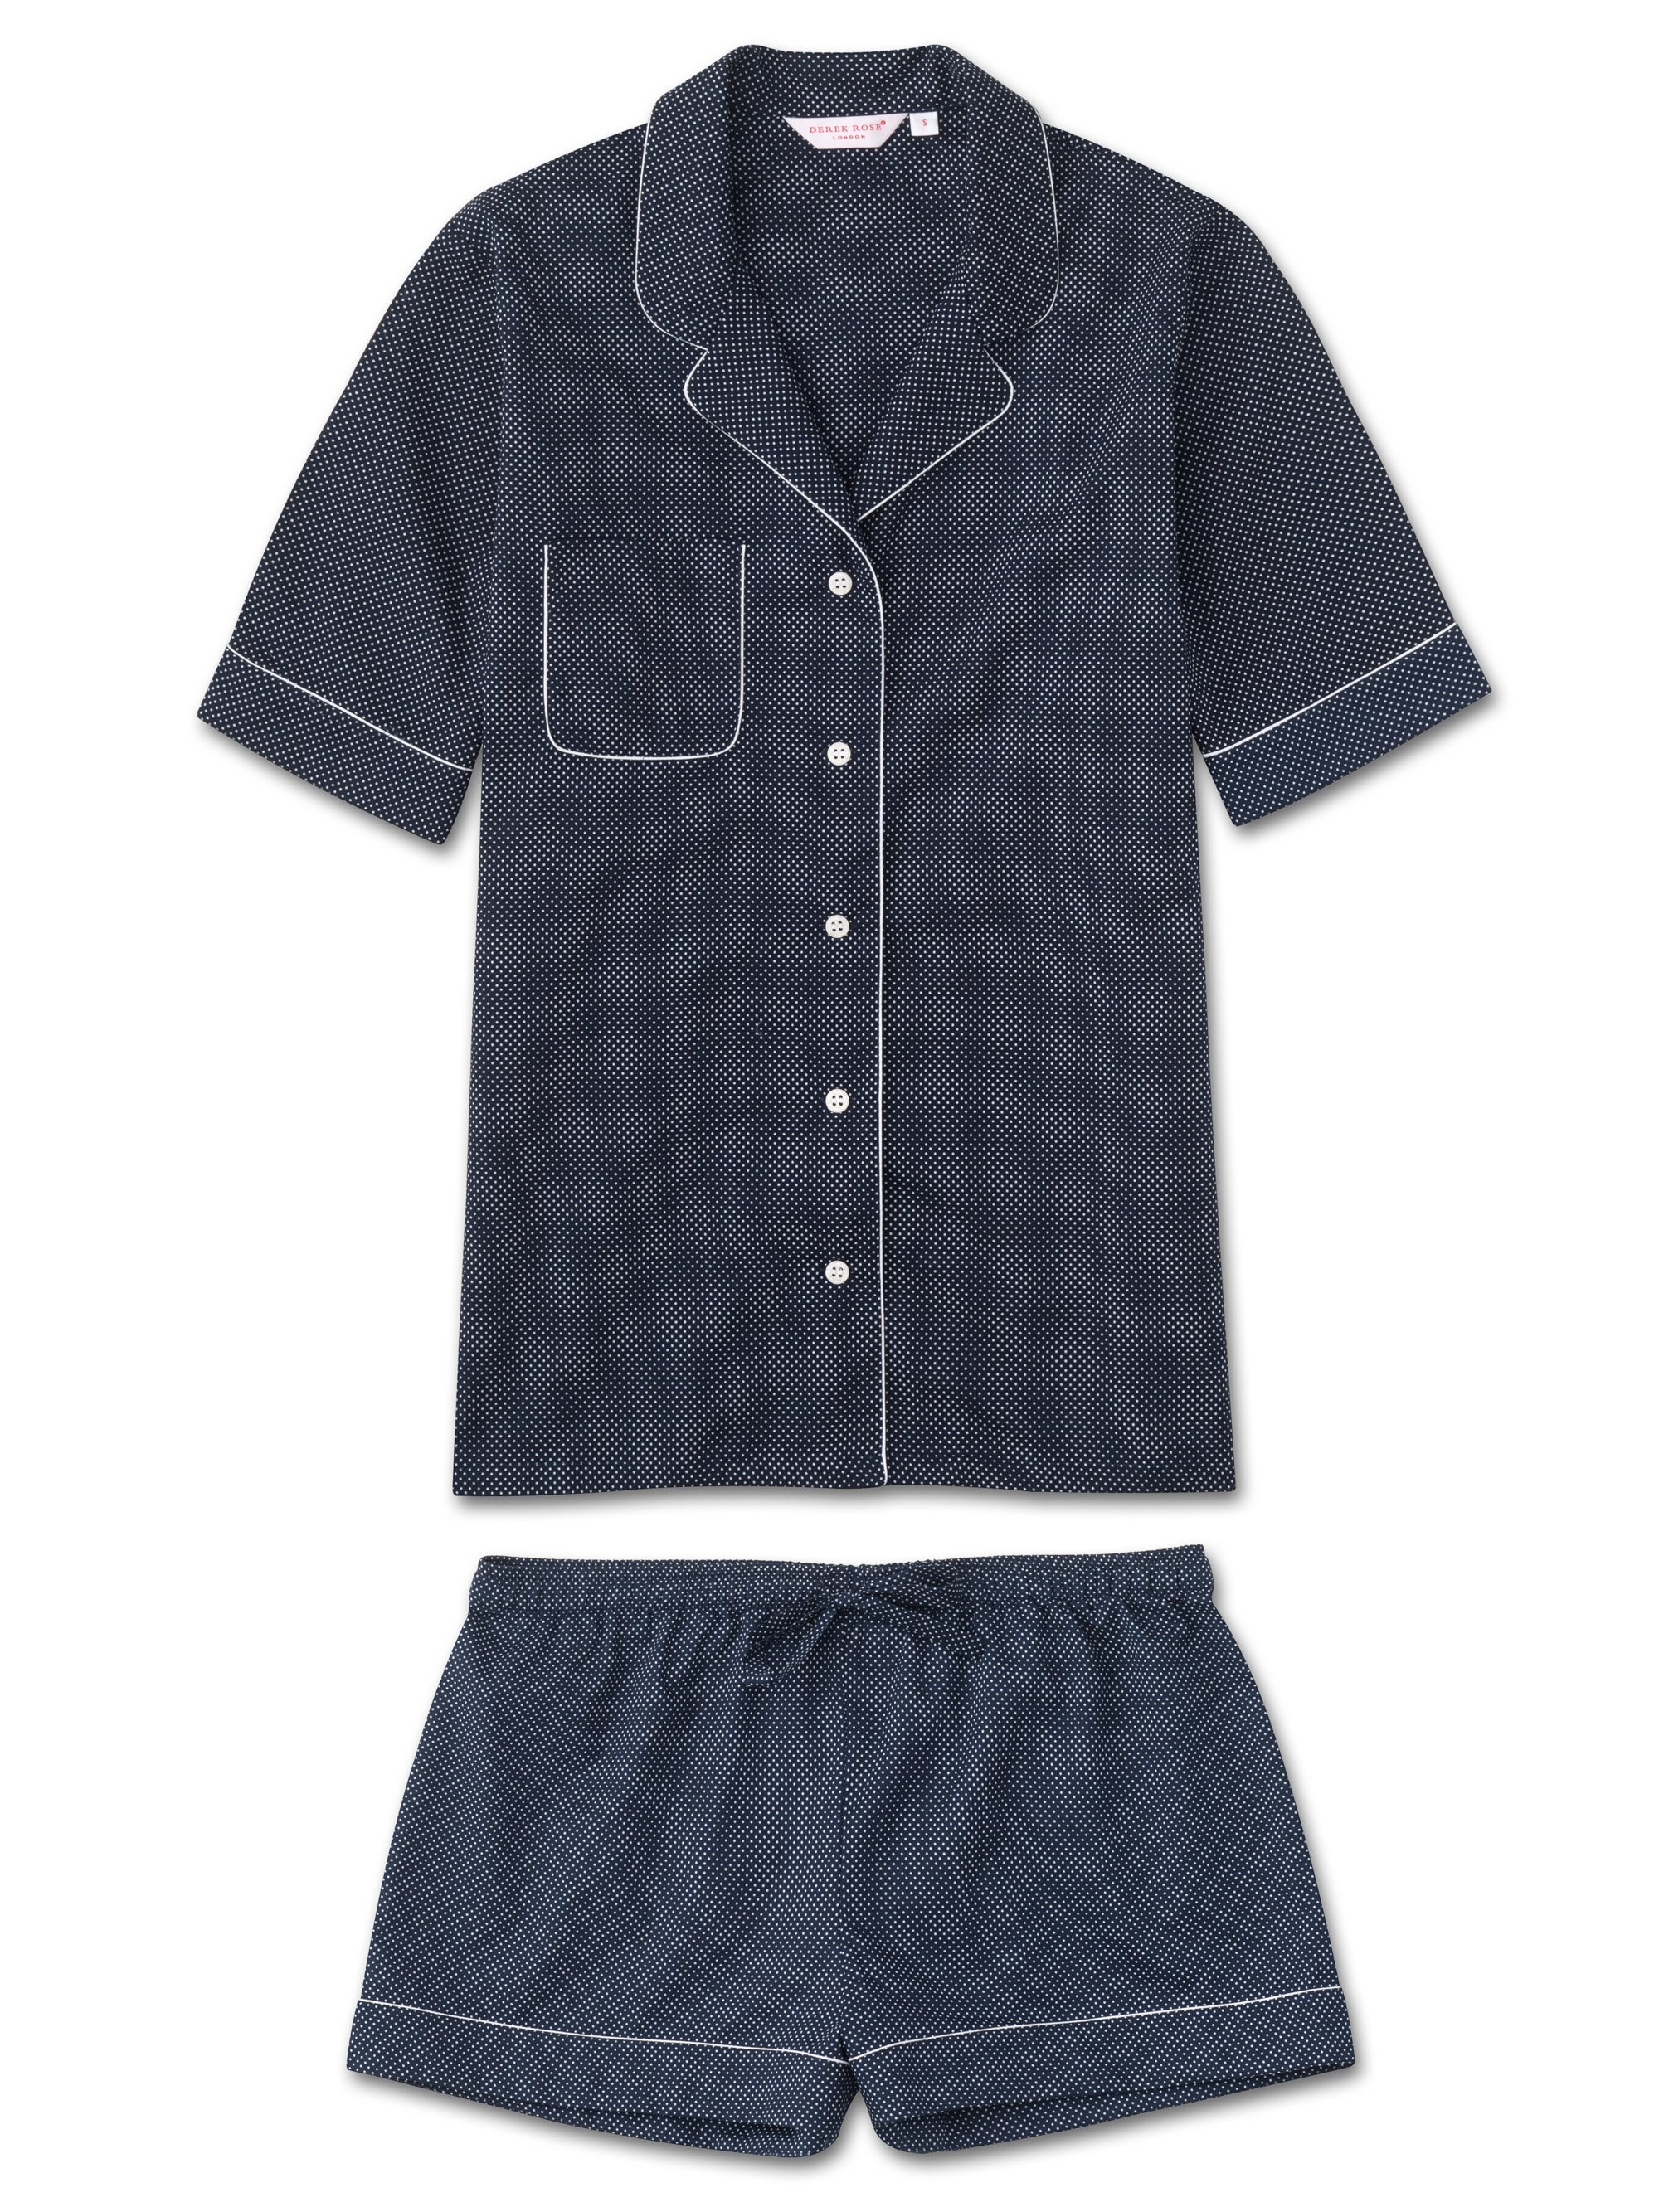 Women's Shortie Pyjamas Plaza 21 Cotton Batiste Navy